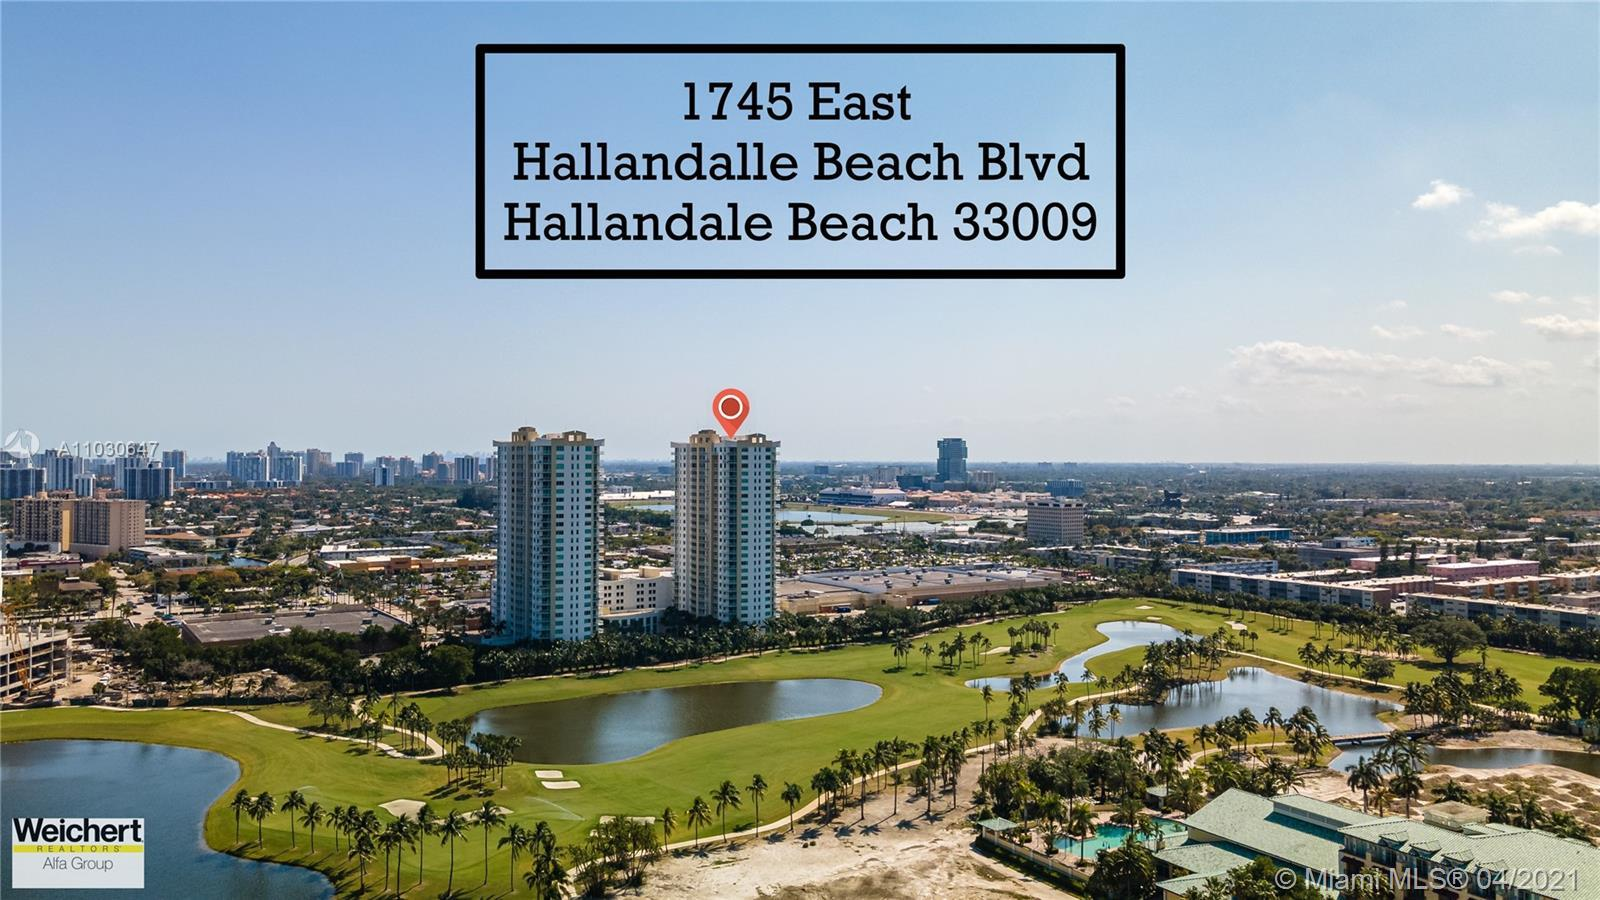 Beautiful apartment with golf course view . this is a fully update 1/1 condo with balcony, spacious